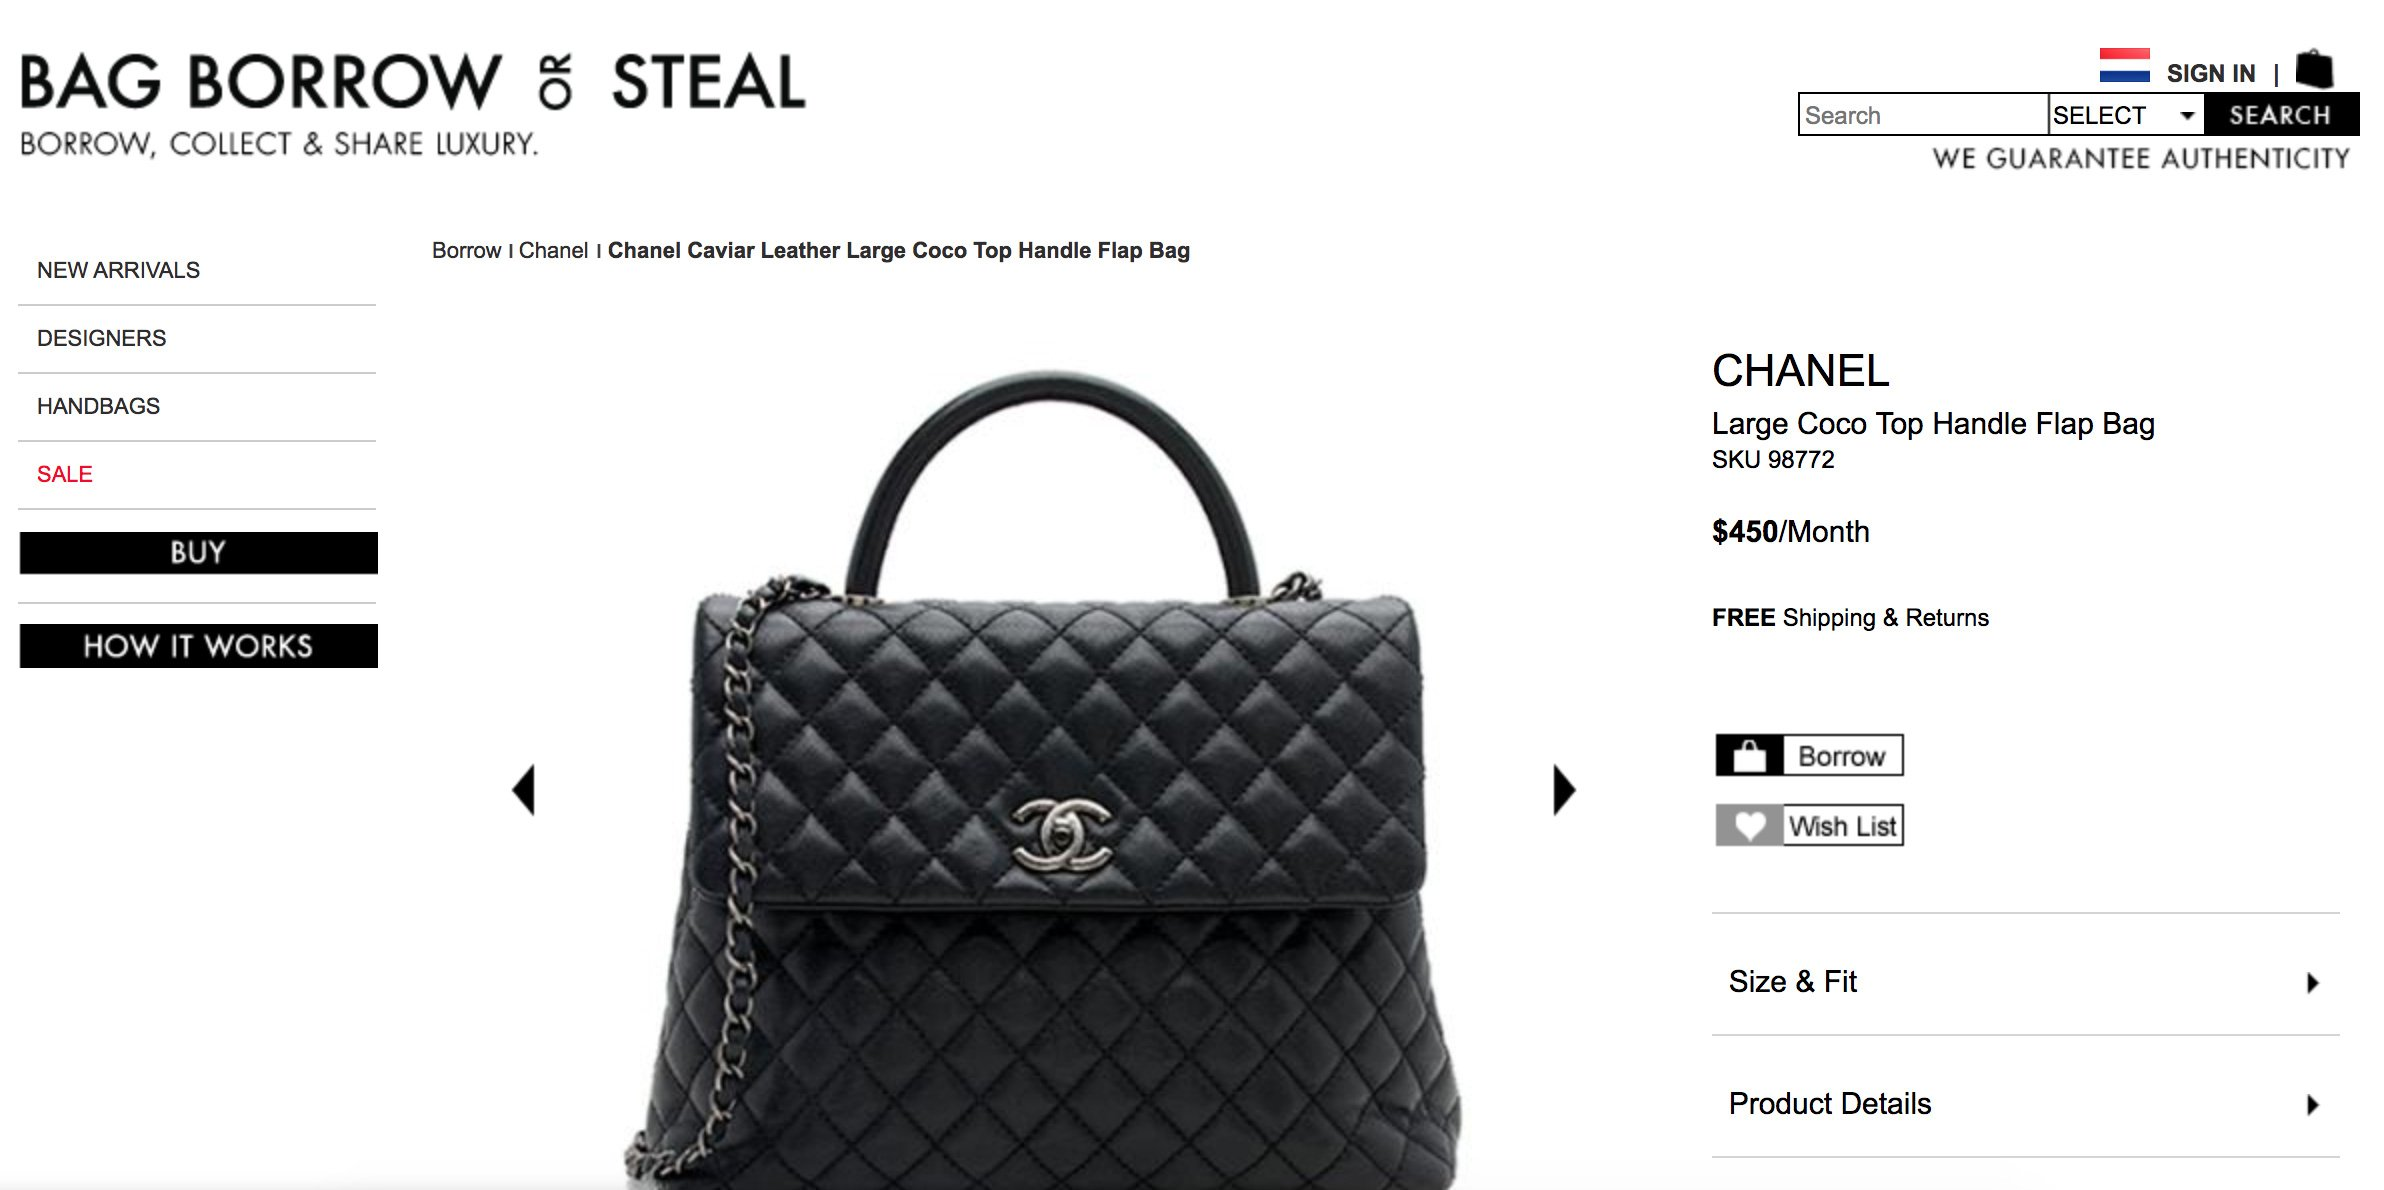 How To Rent A Chanel Bag